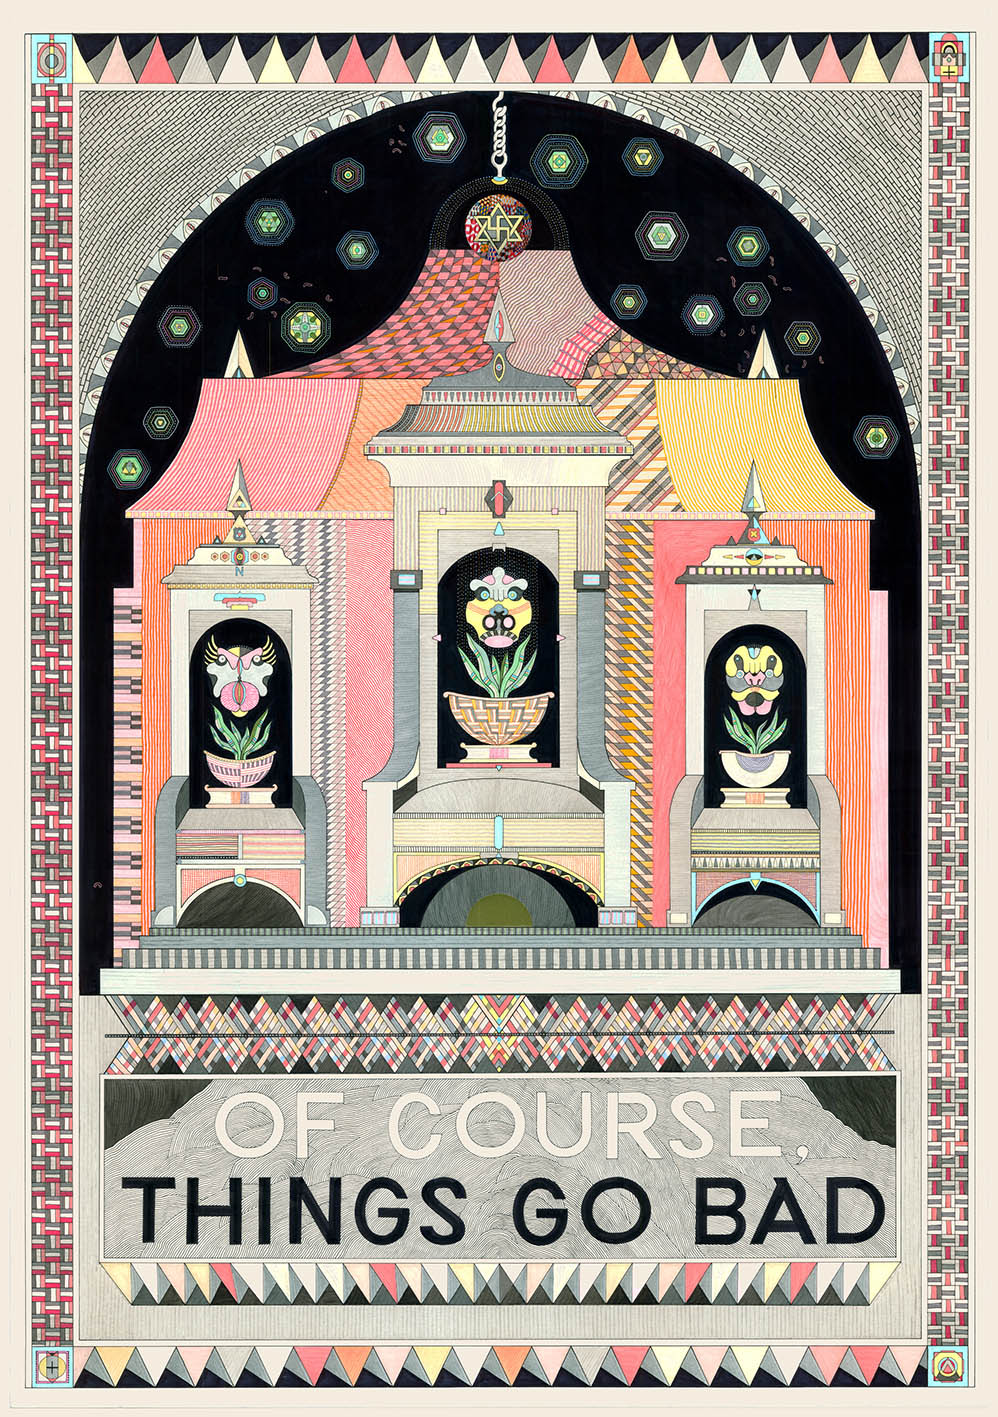 Of Course, Things Go Bad, 2013